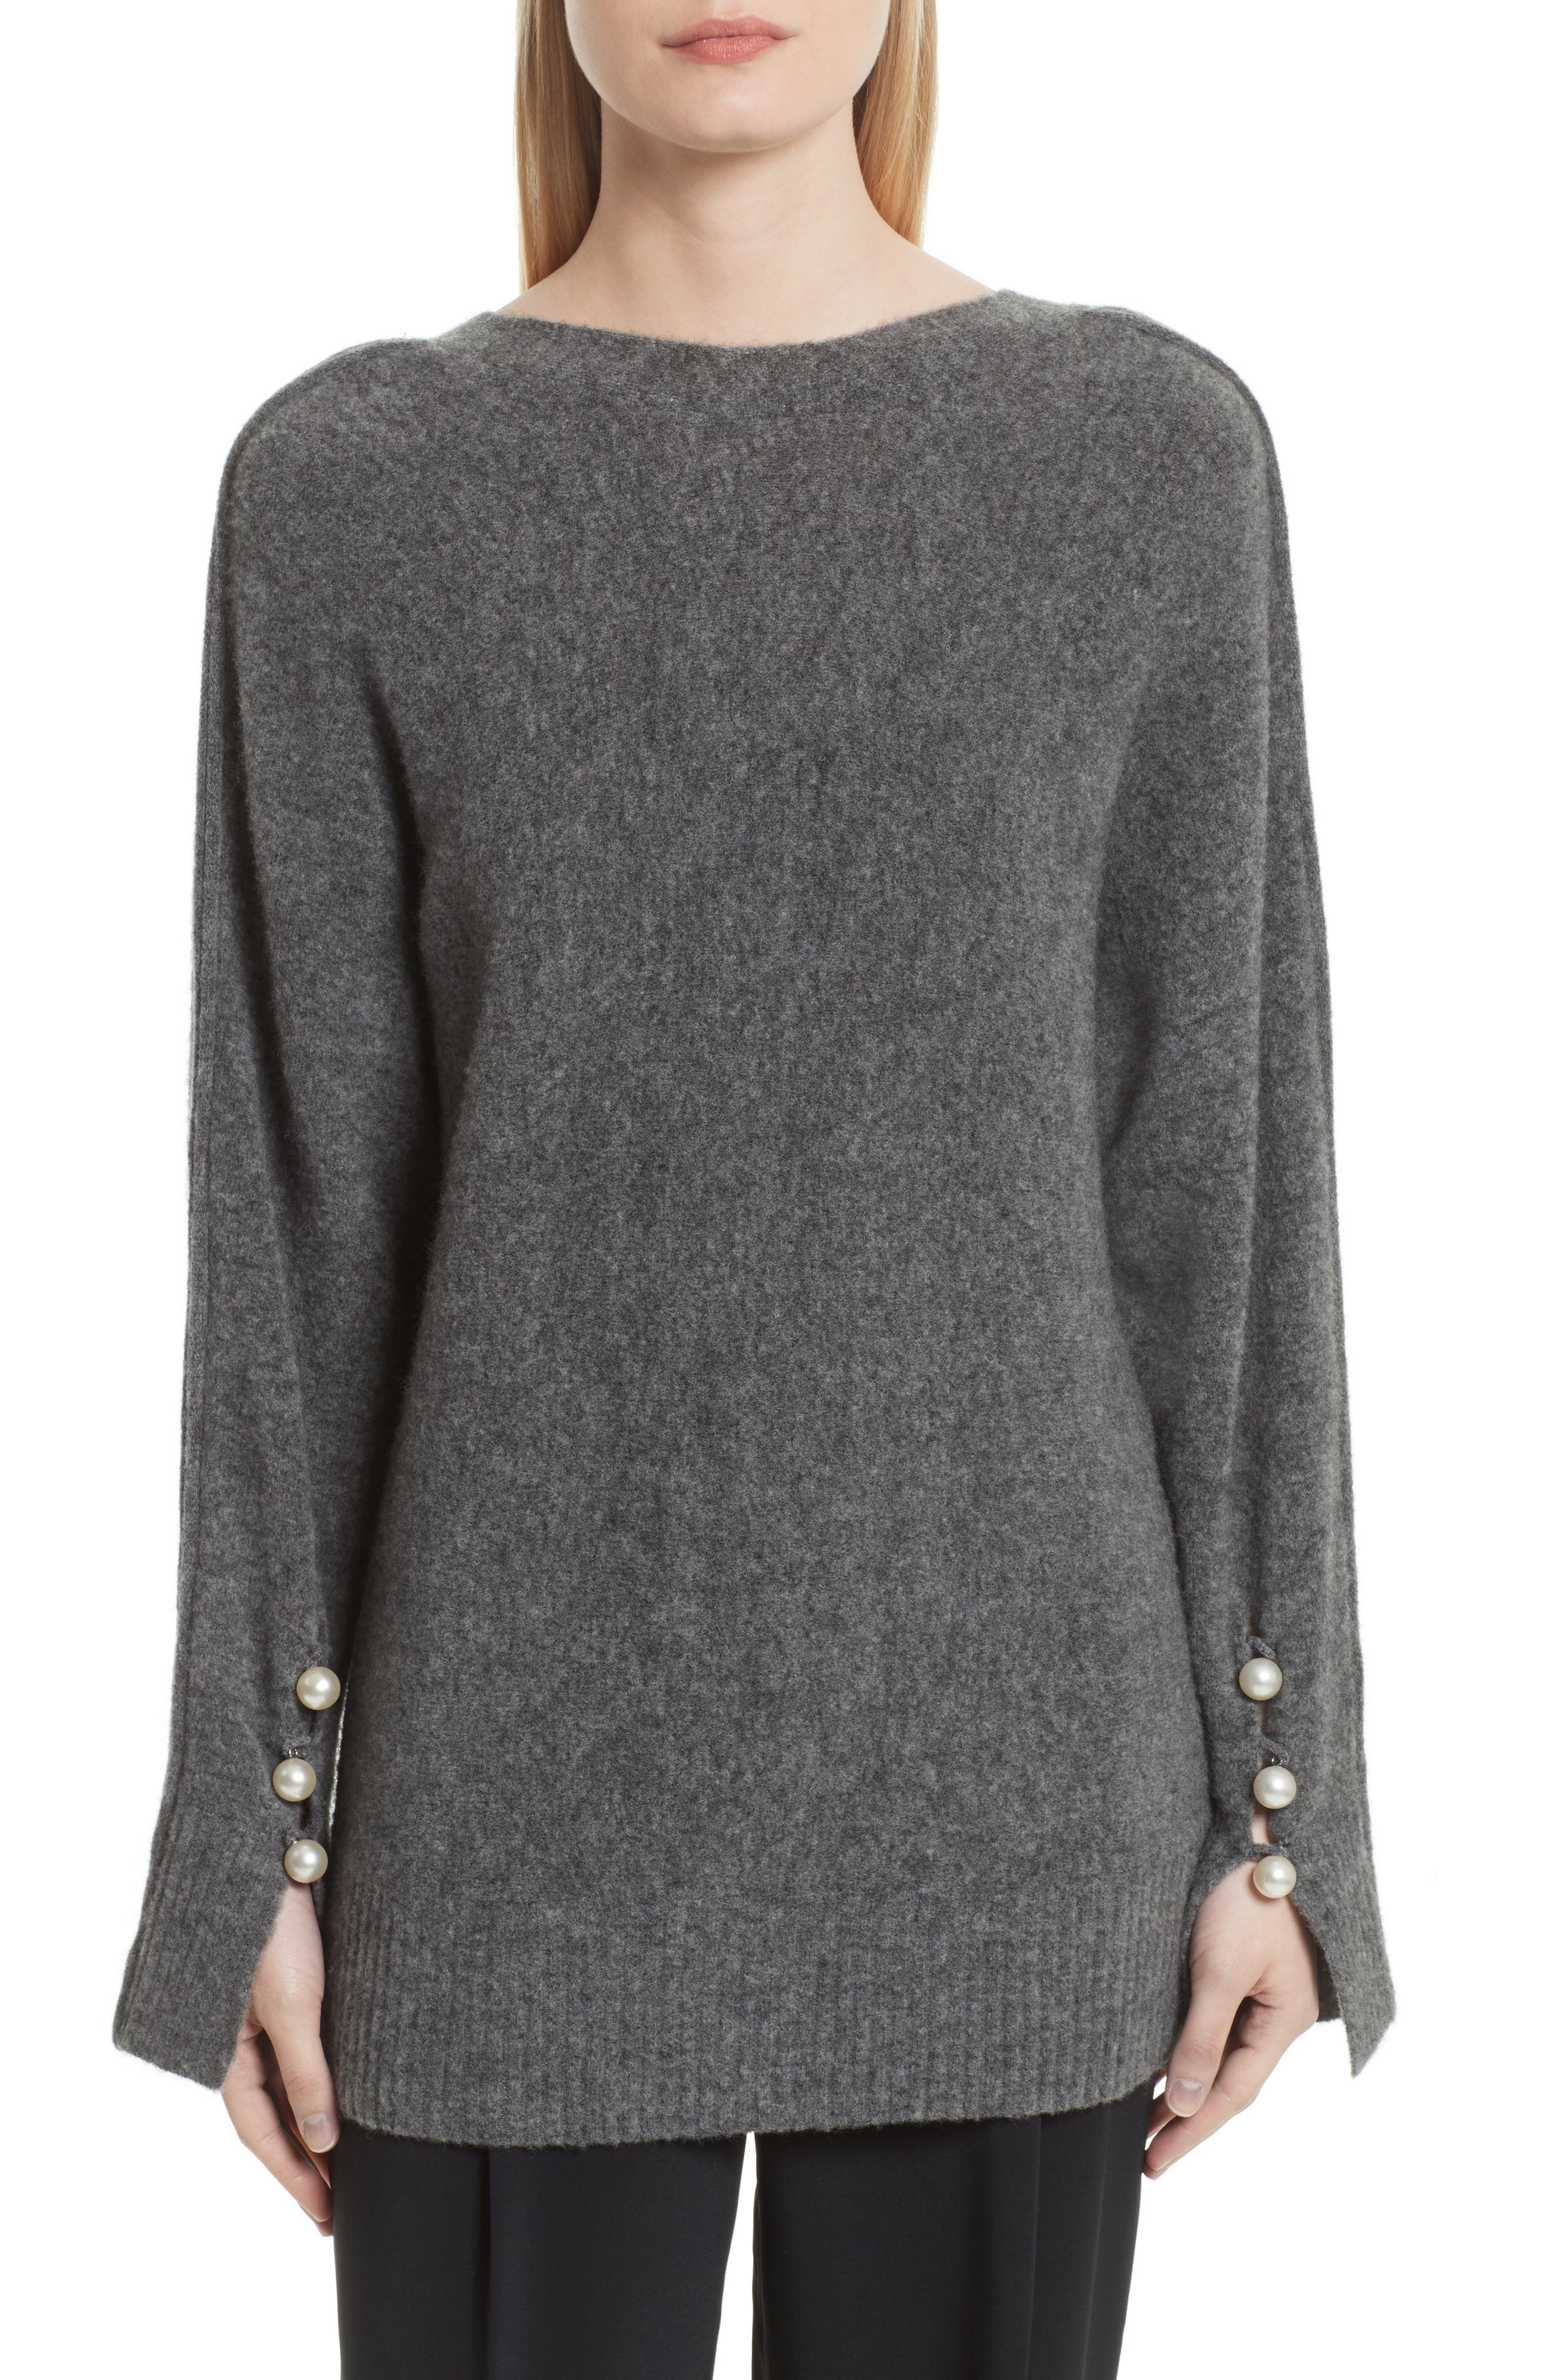 3.1 Phillip Lim V-Back Sweater with Faux Pearl Cuffs